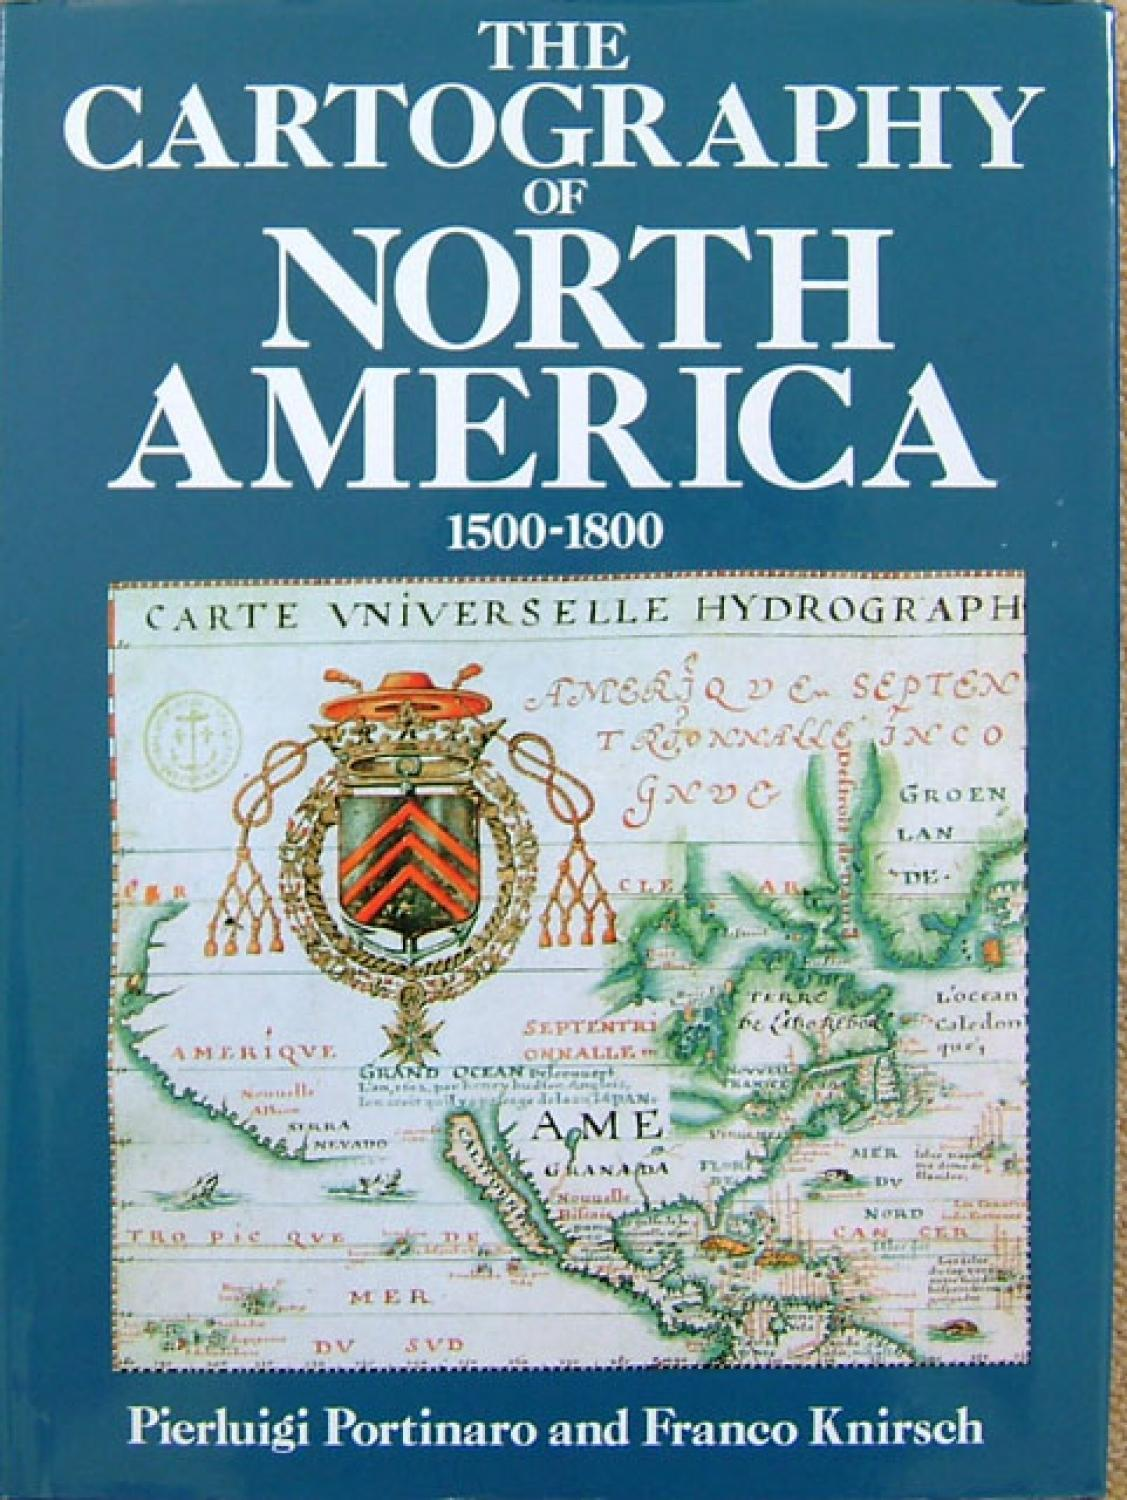 SOLD The Cartography of North America